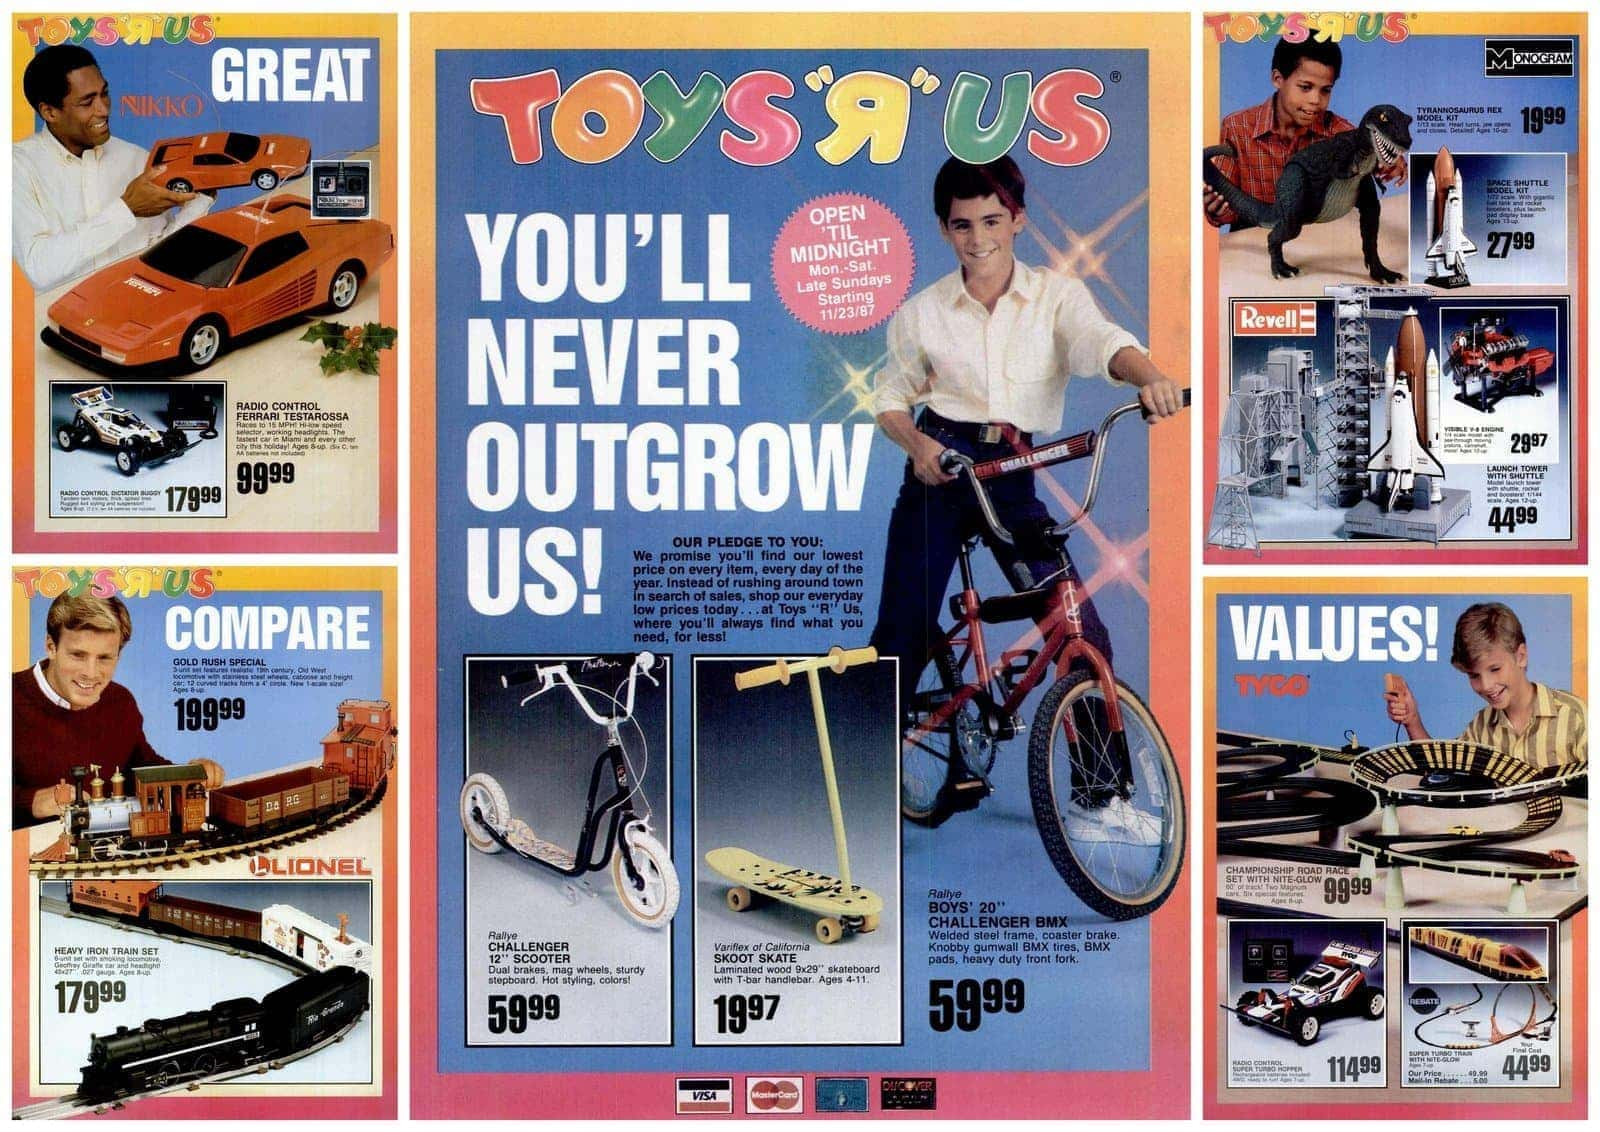 Toys Are Us Catalog : Toys r us catalog you ll never outgrow